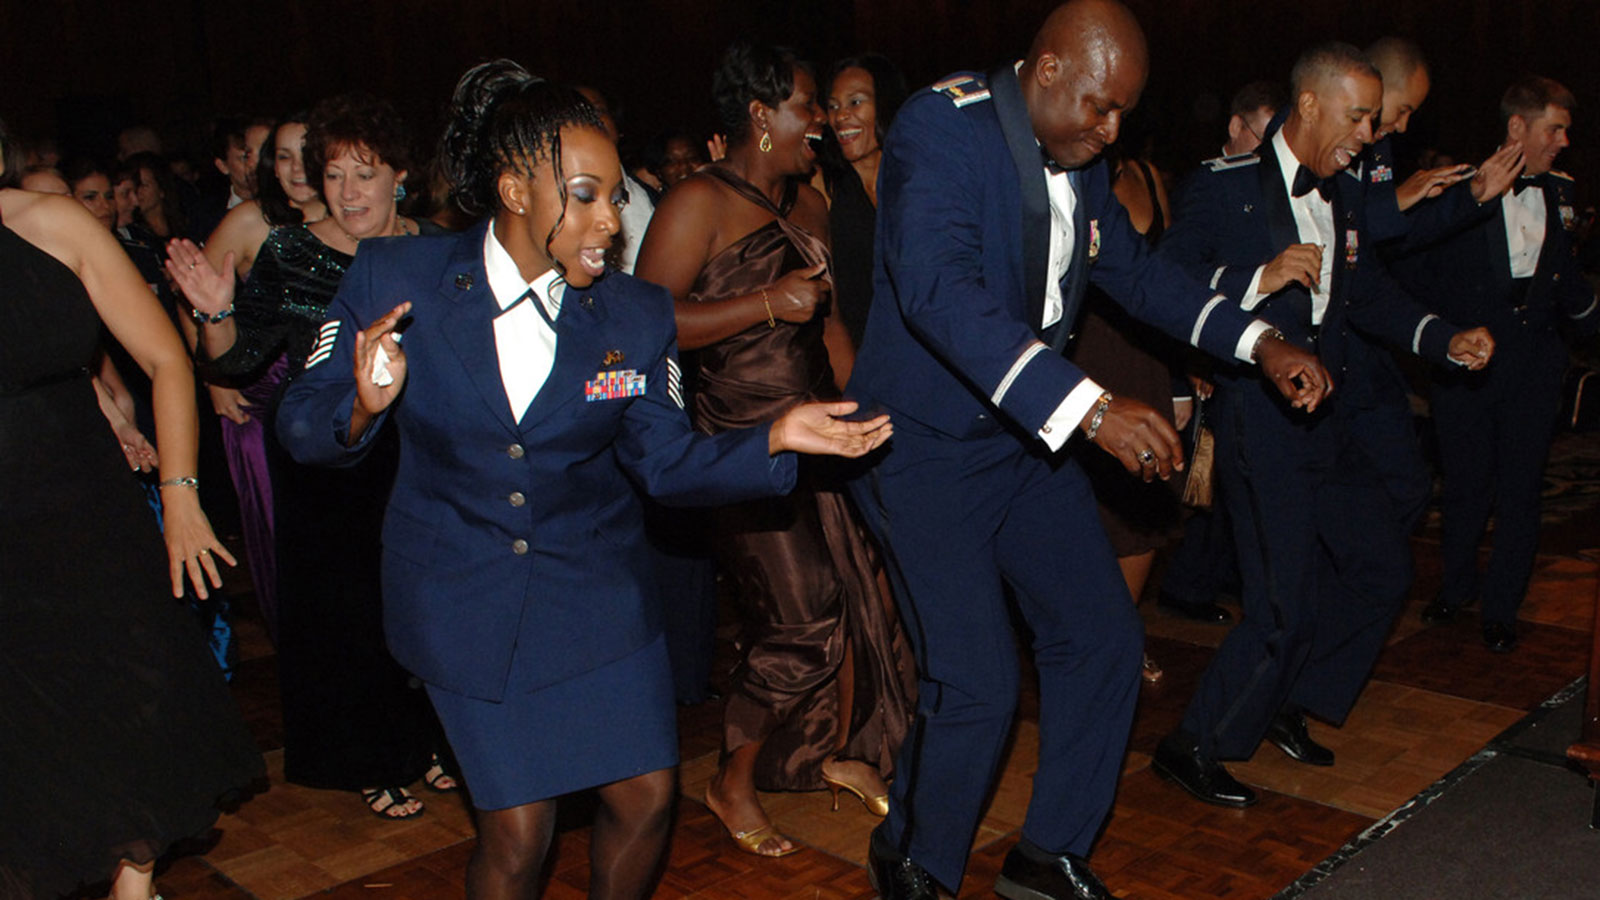 The Stories Behind the Electric Slide, the Moonwalk and Other Epic Dance Moves